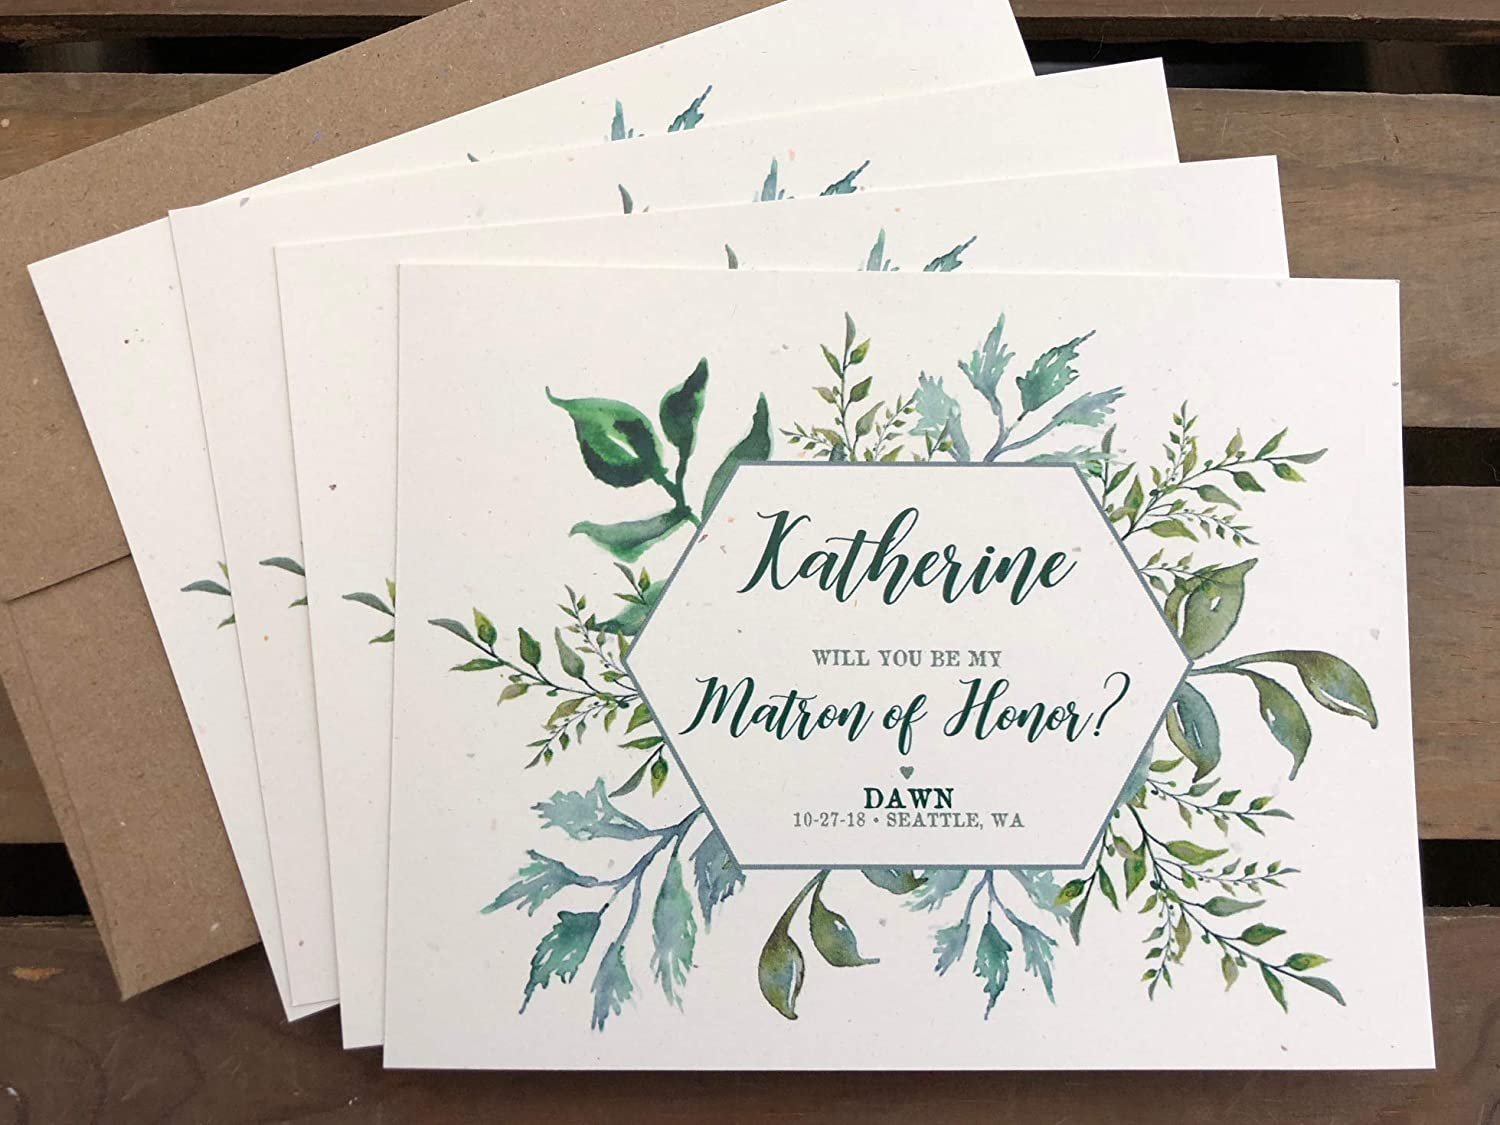 Personalized Bridal Party Proposal Cards - Greenery leaves - Will you be my Bridesmaid - Maid or Matron of Honor - Junior Bridesmaids - Flower Girl - Wedding - Eco Friendly